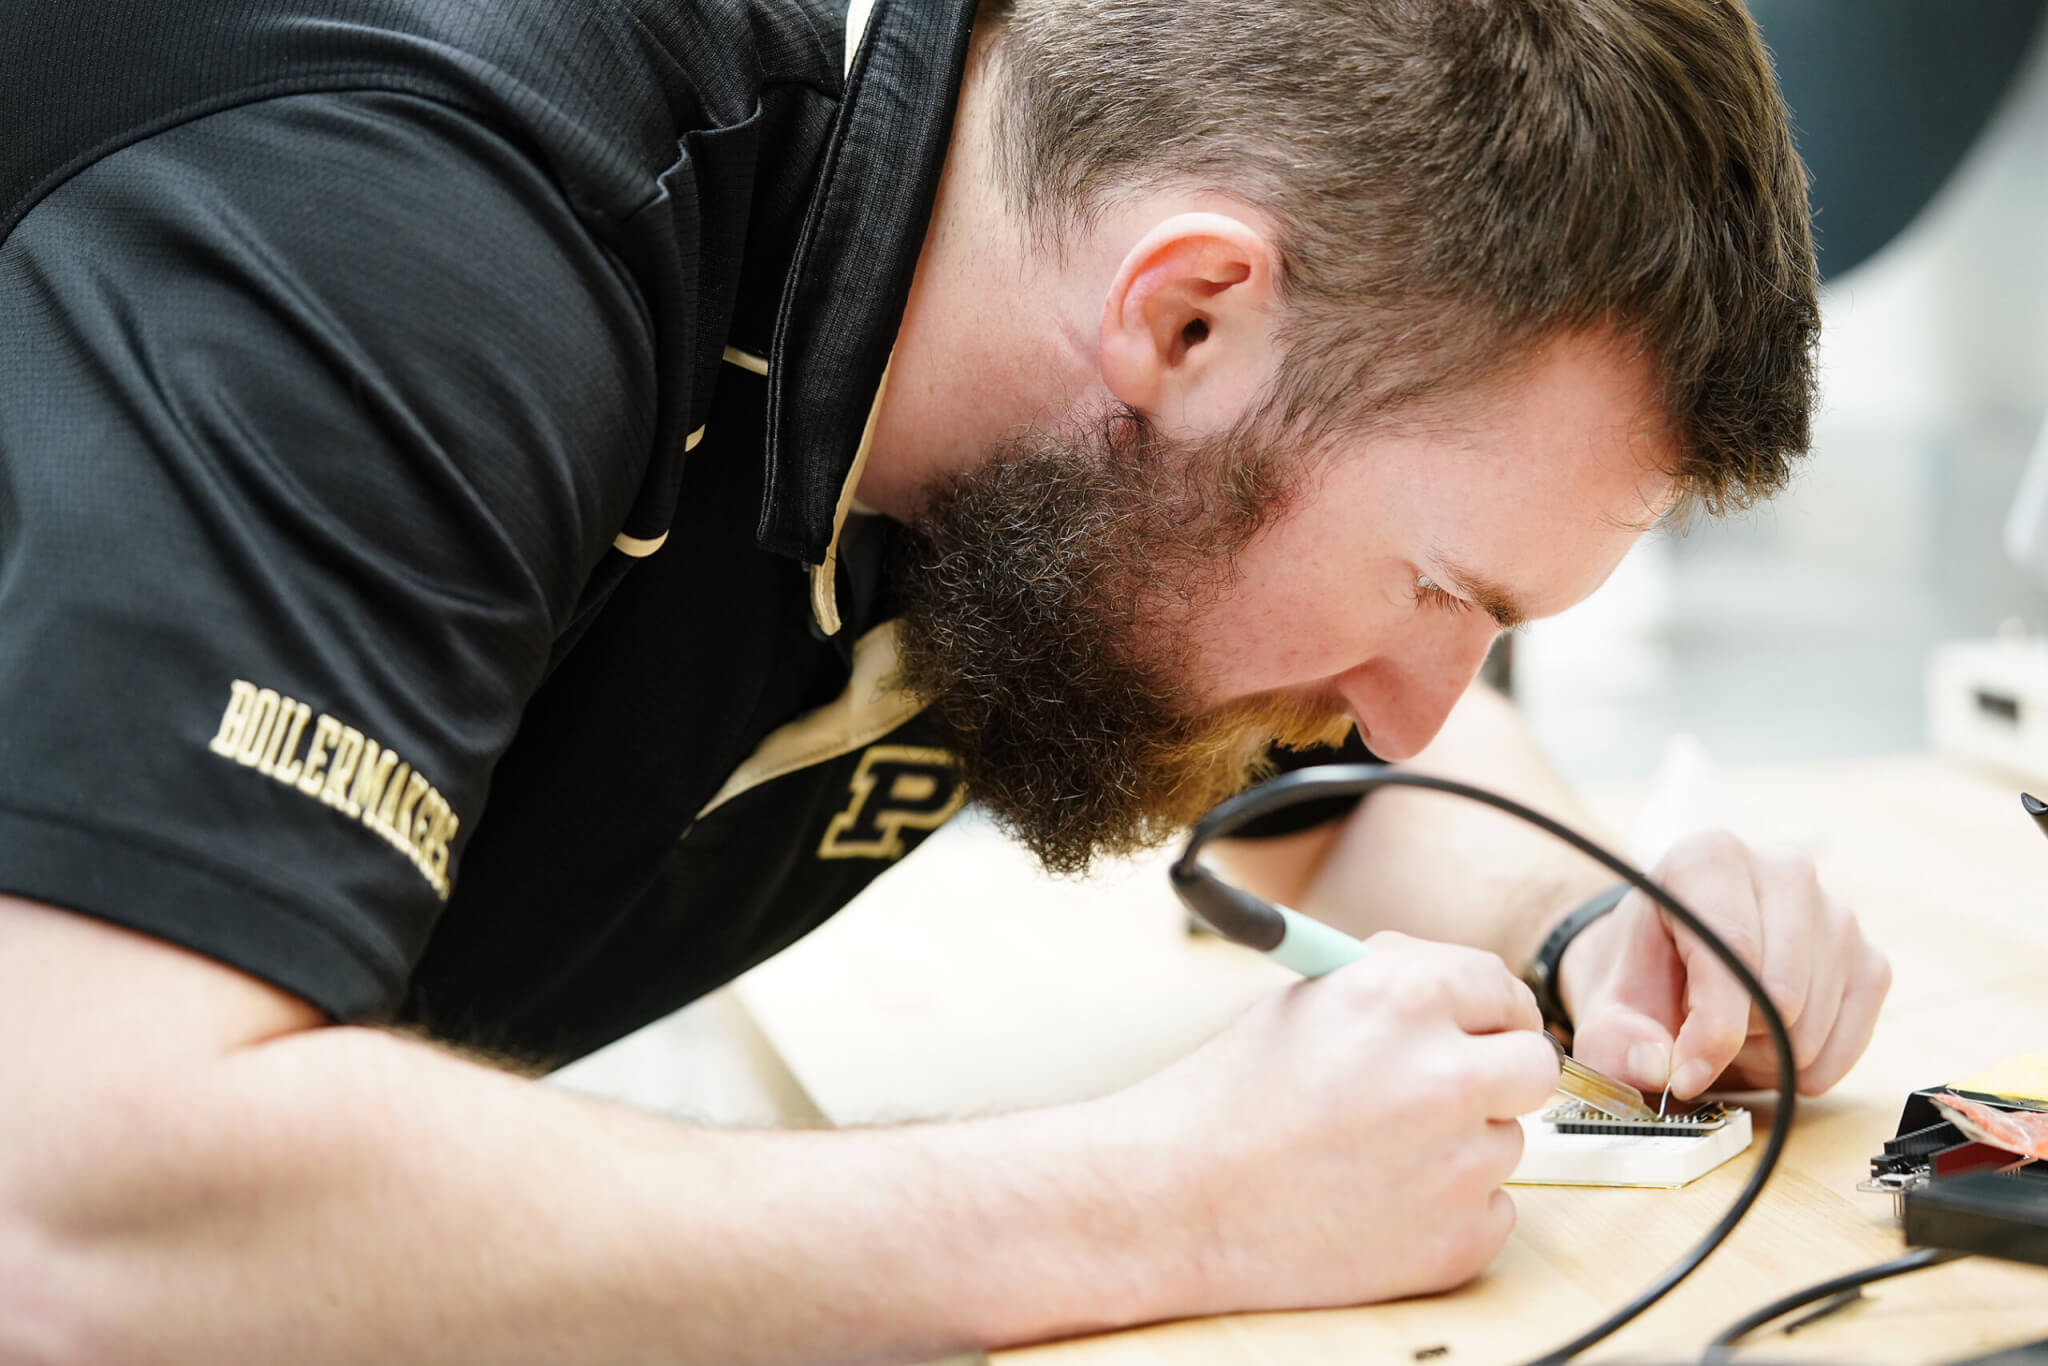 Aaron Etienne solders a small circuit board as part of a data acquisition project.